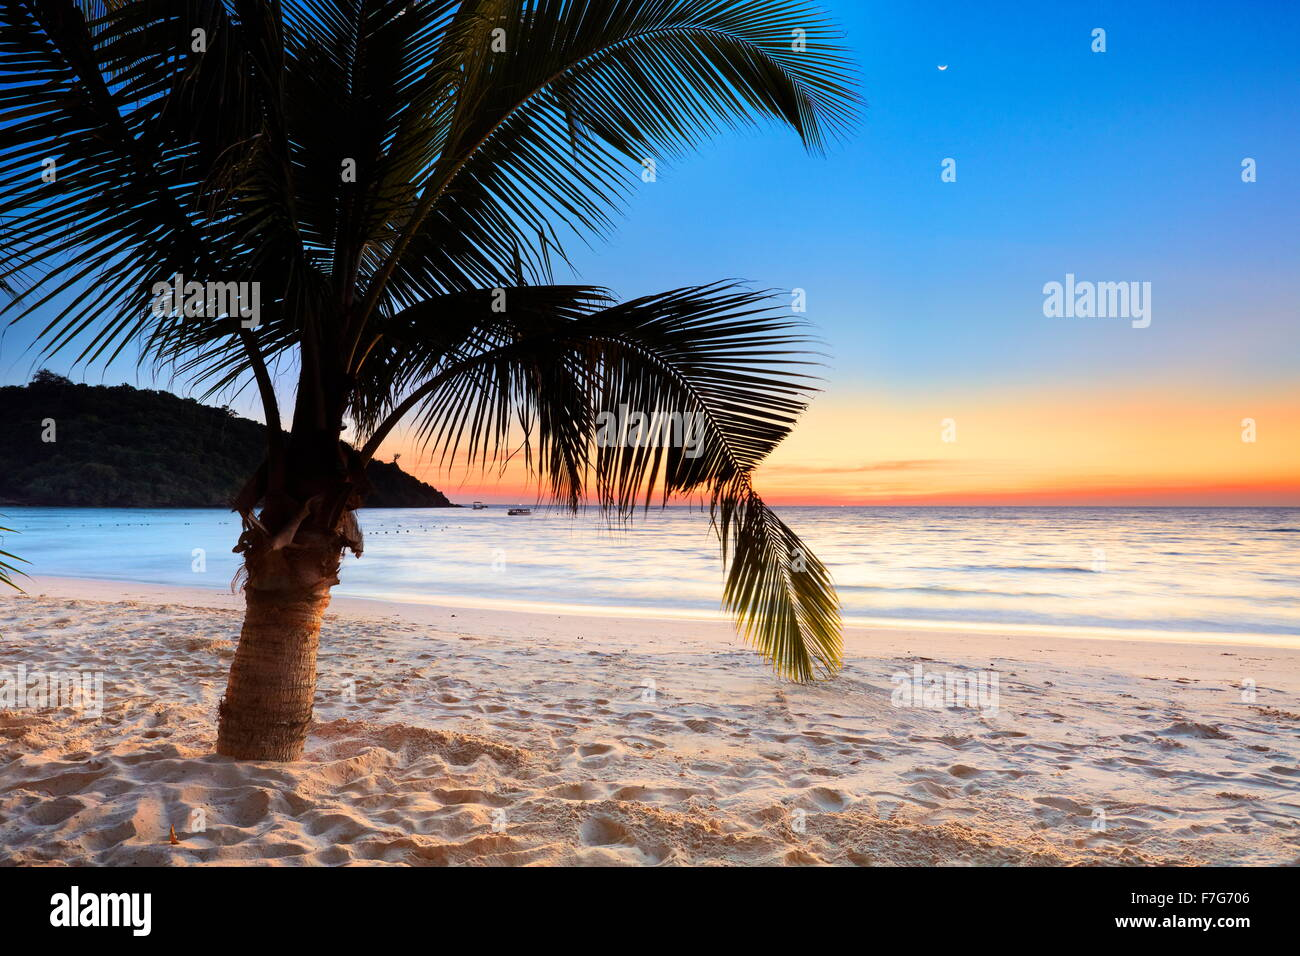 Tropical beach after sunset, Ko Samet Island, Thailand - Stock Image